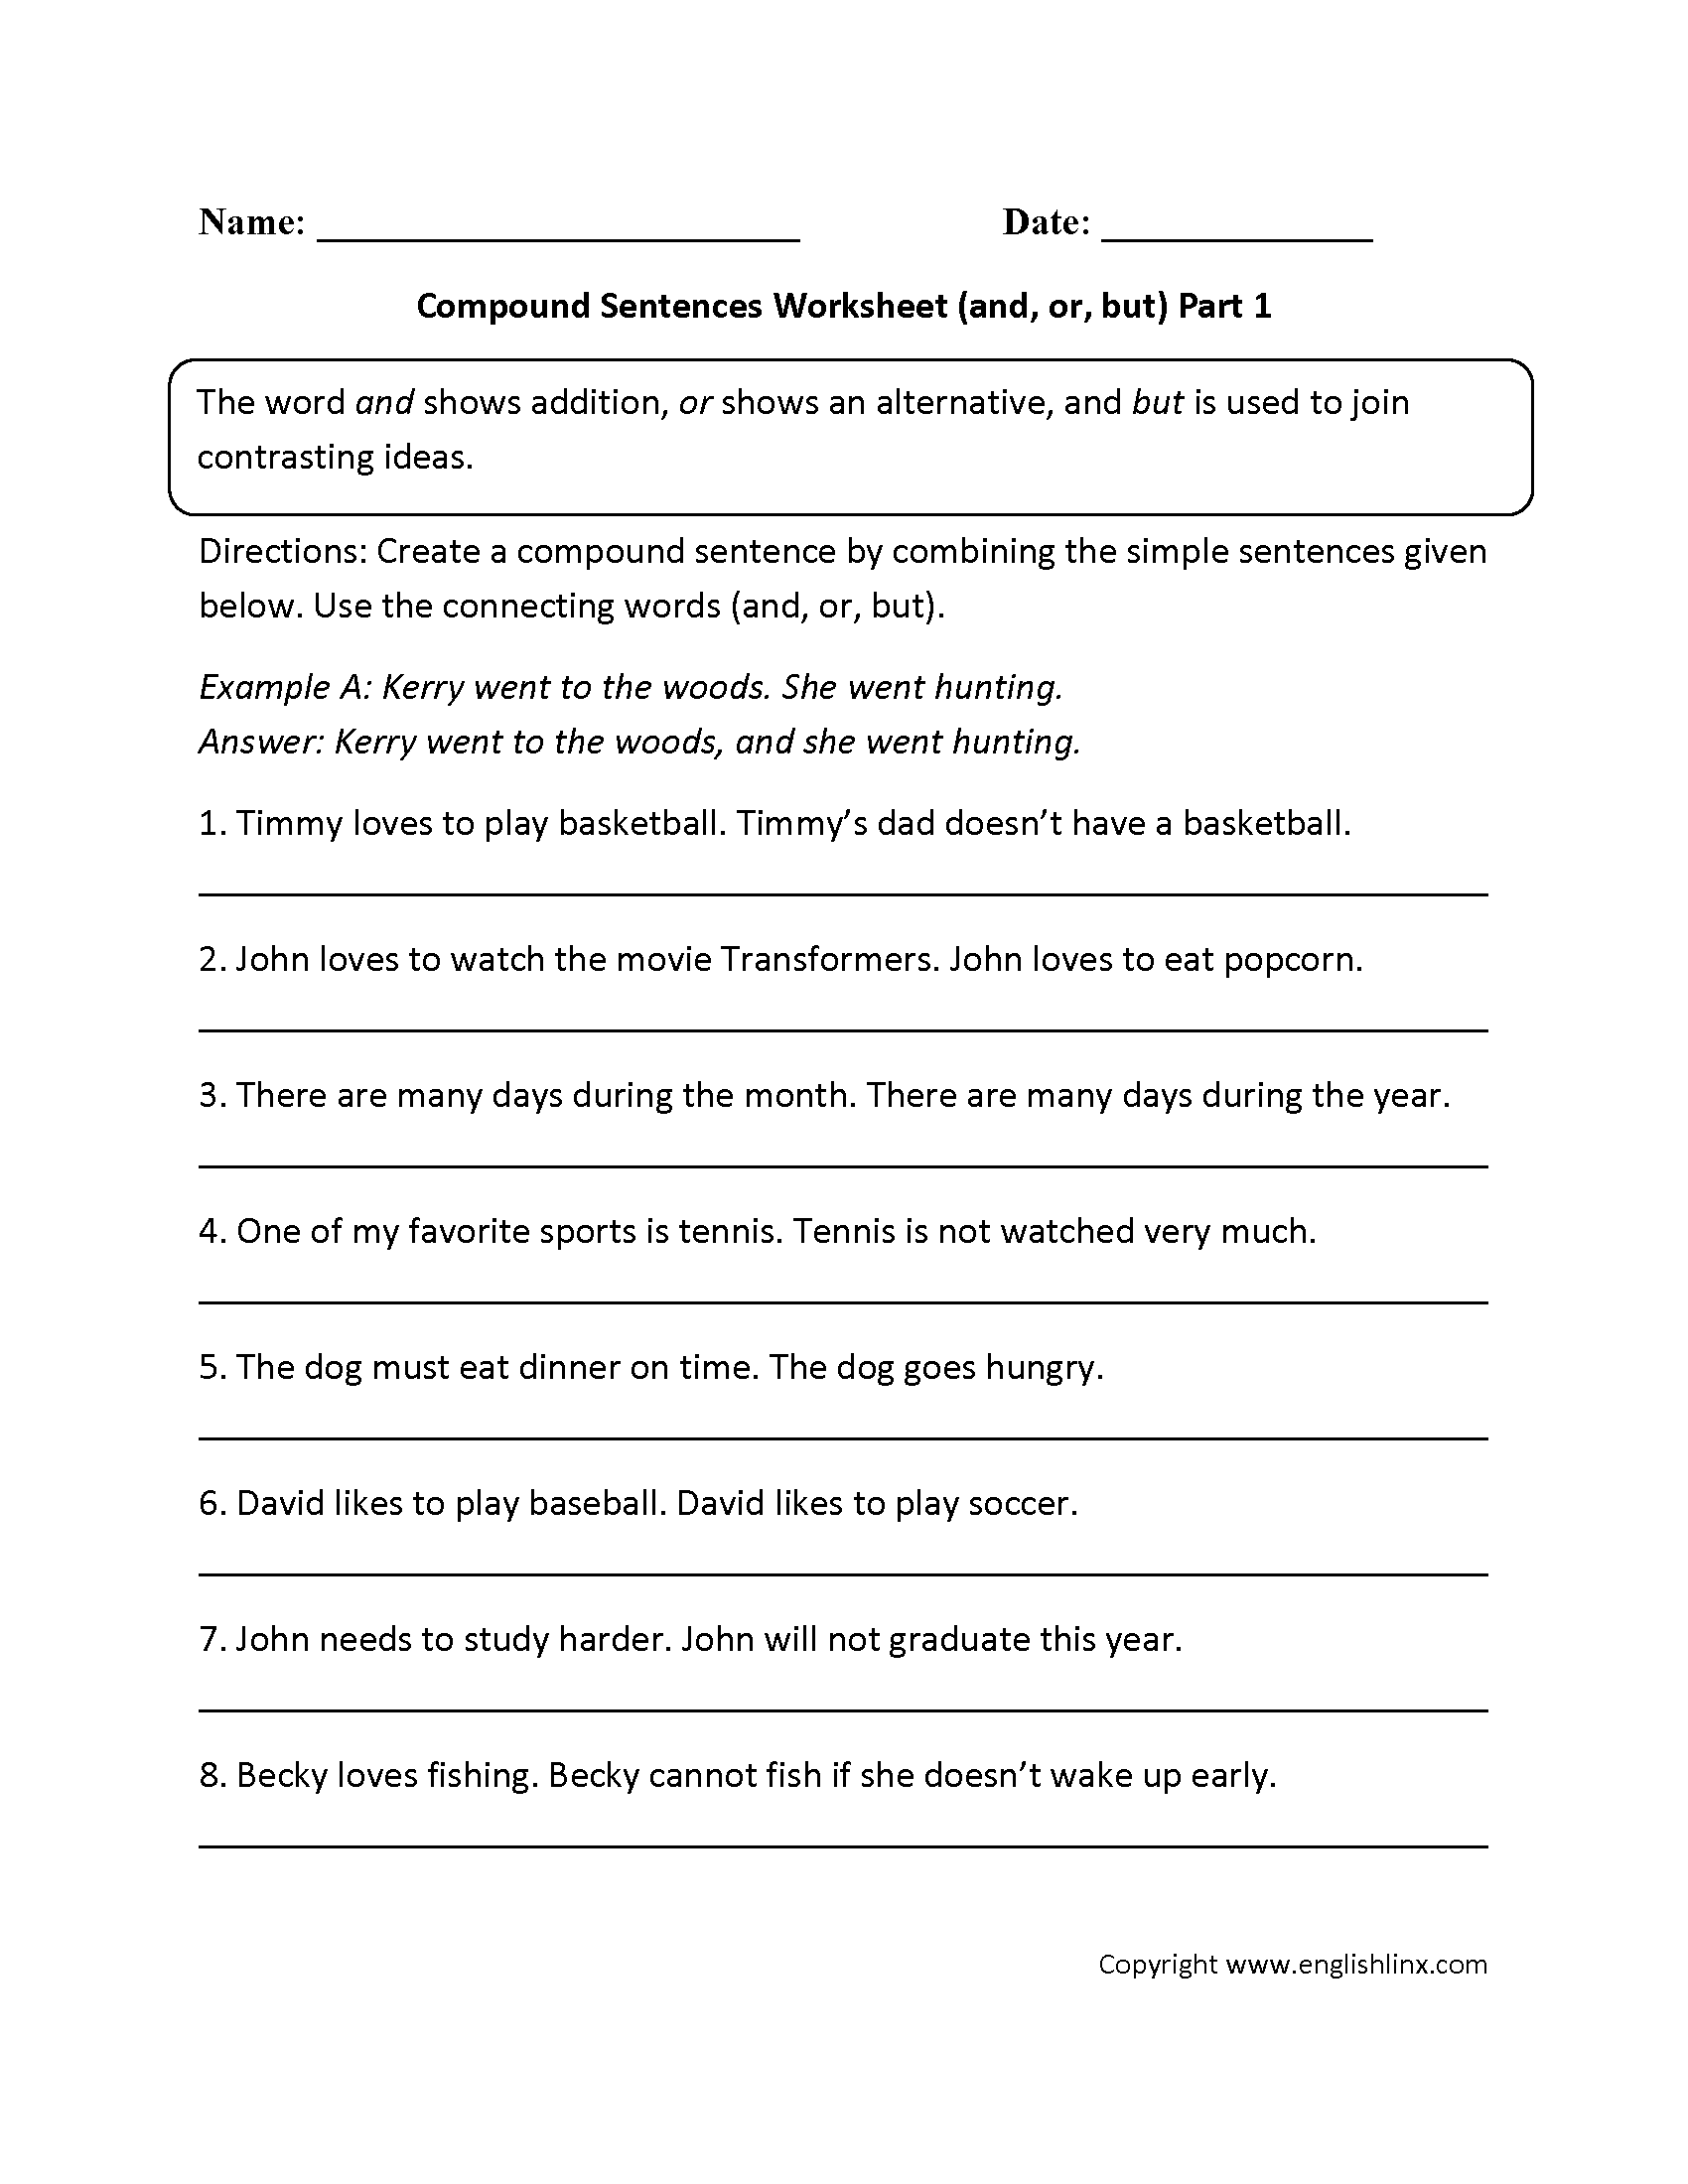 and,or, and but Compound Sentences Worksheet | sentencessimple and ...